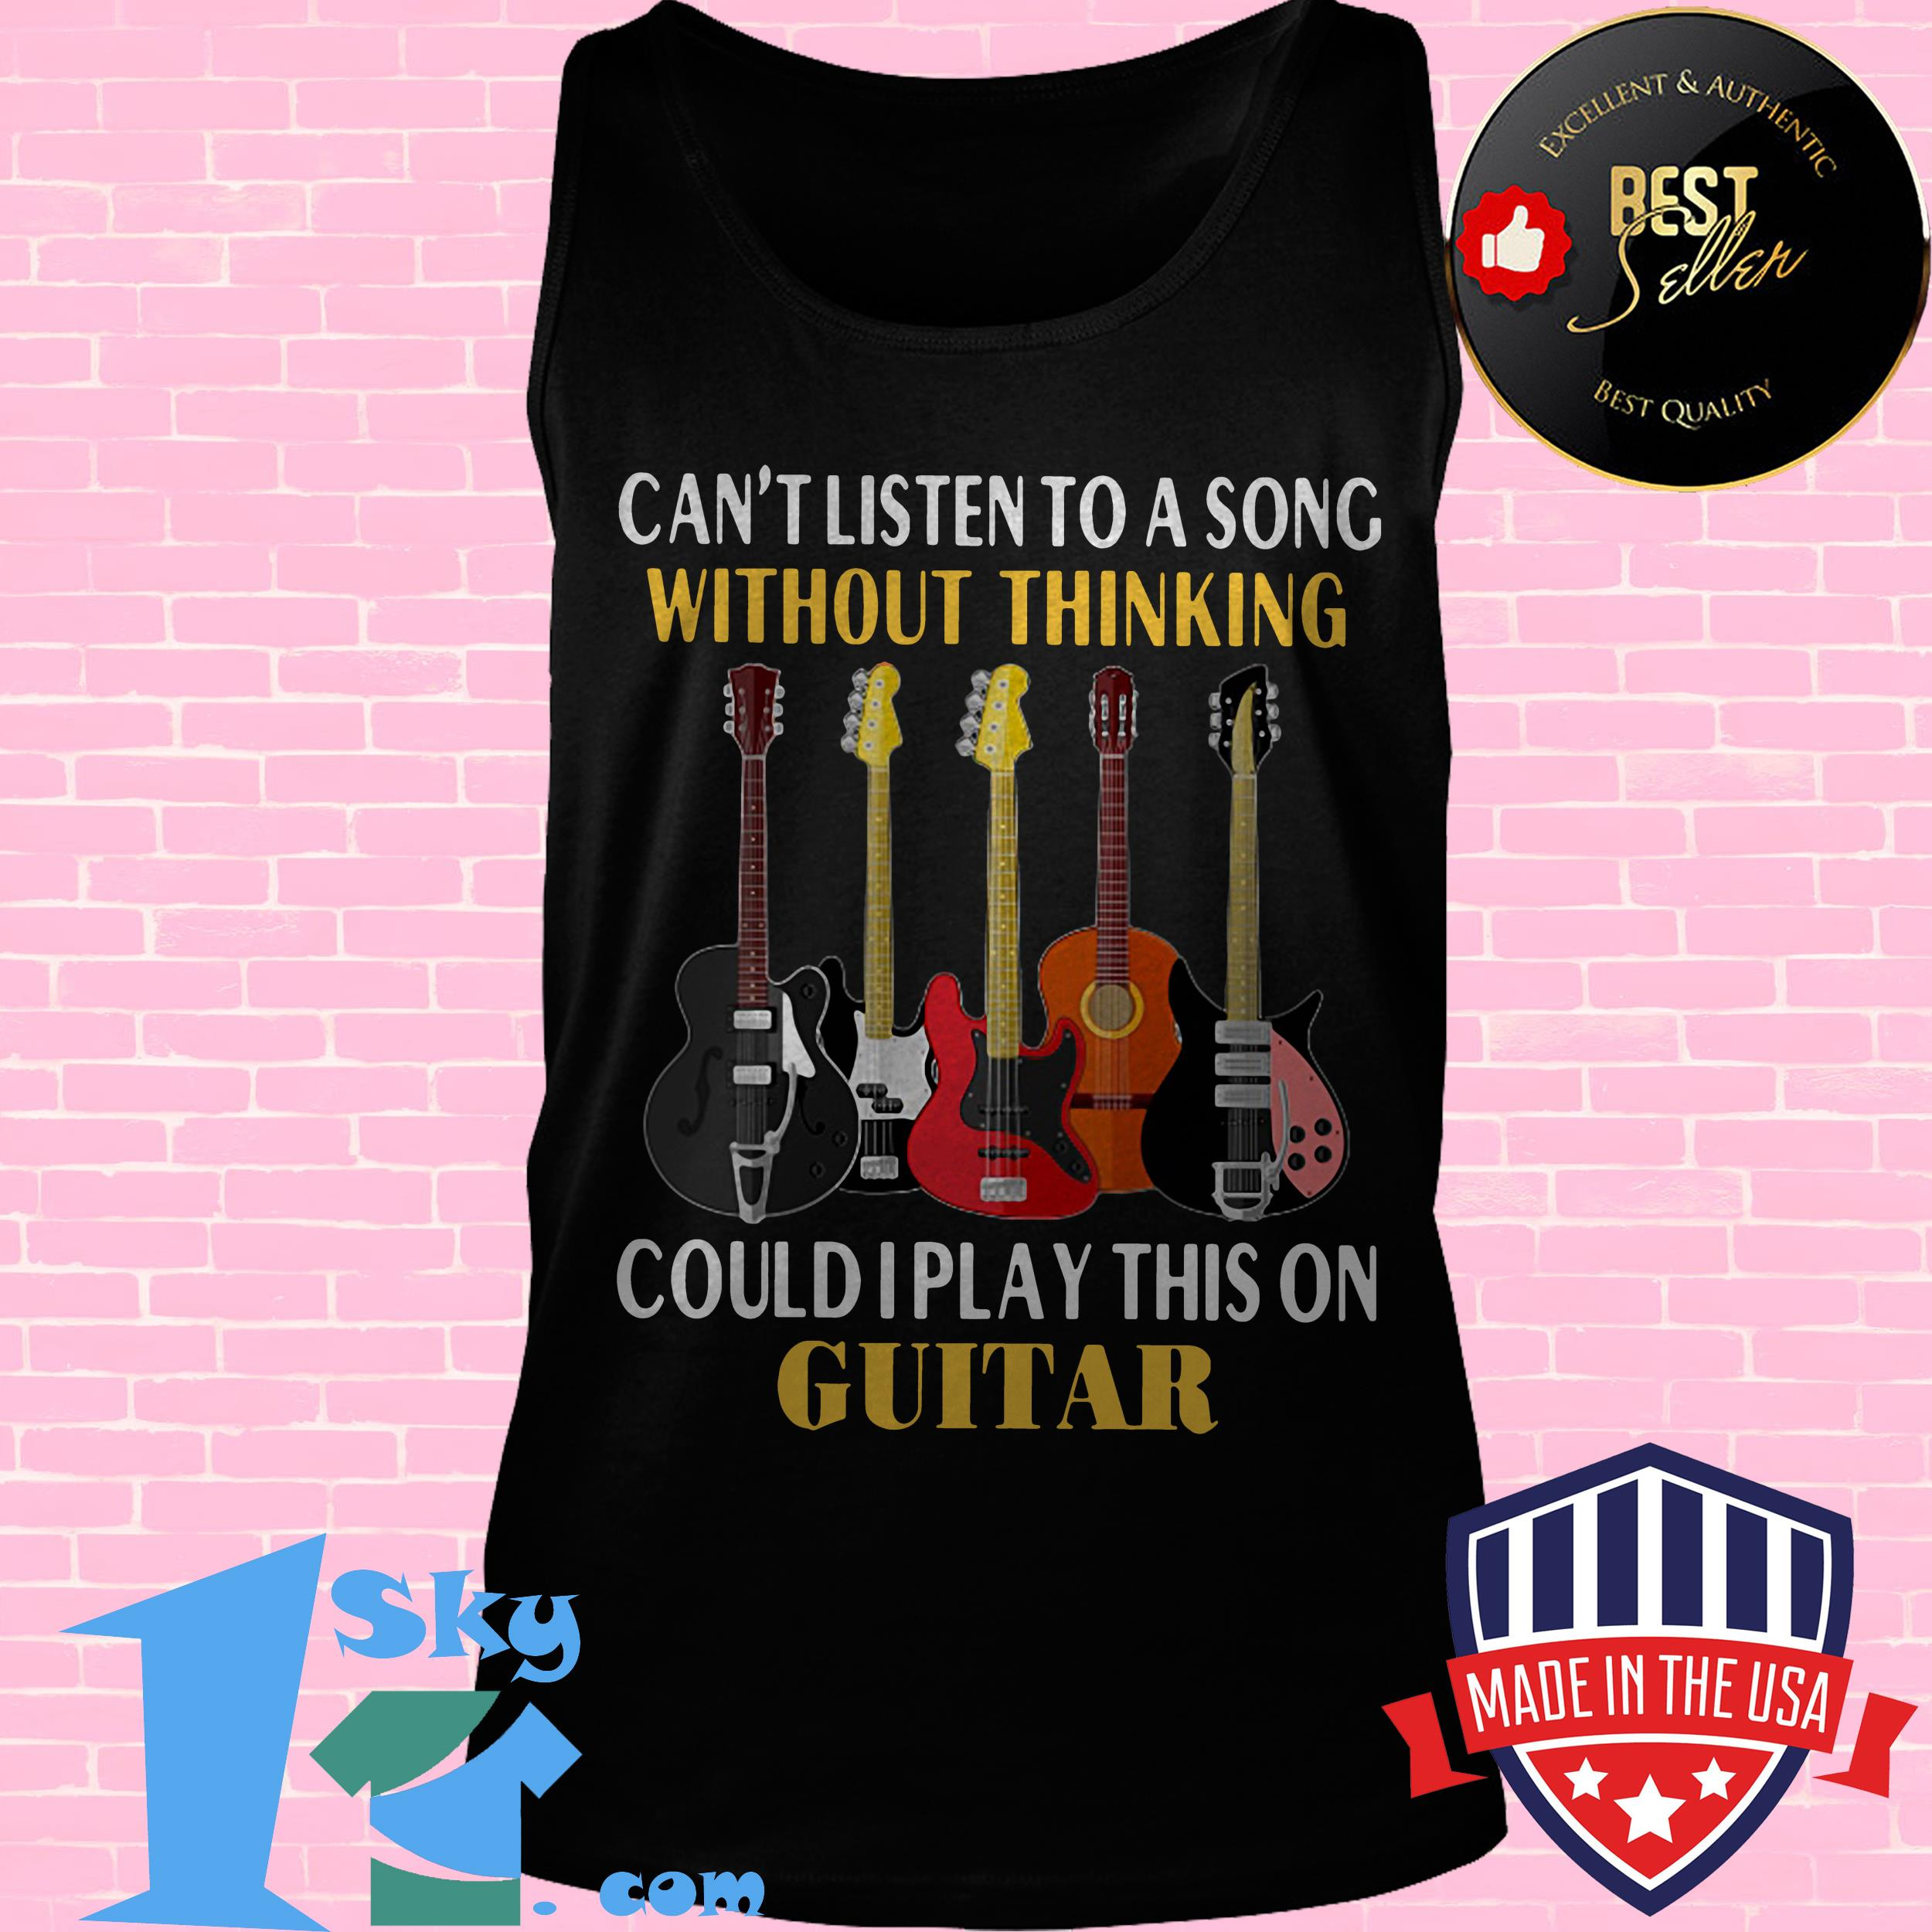 cant listen to a song without thinking could i play this on guitar tank top - Can't Listen To A Song Without Thinking Could I Play This On Guitar shirt